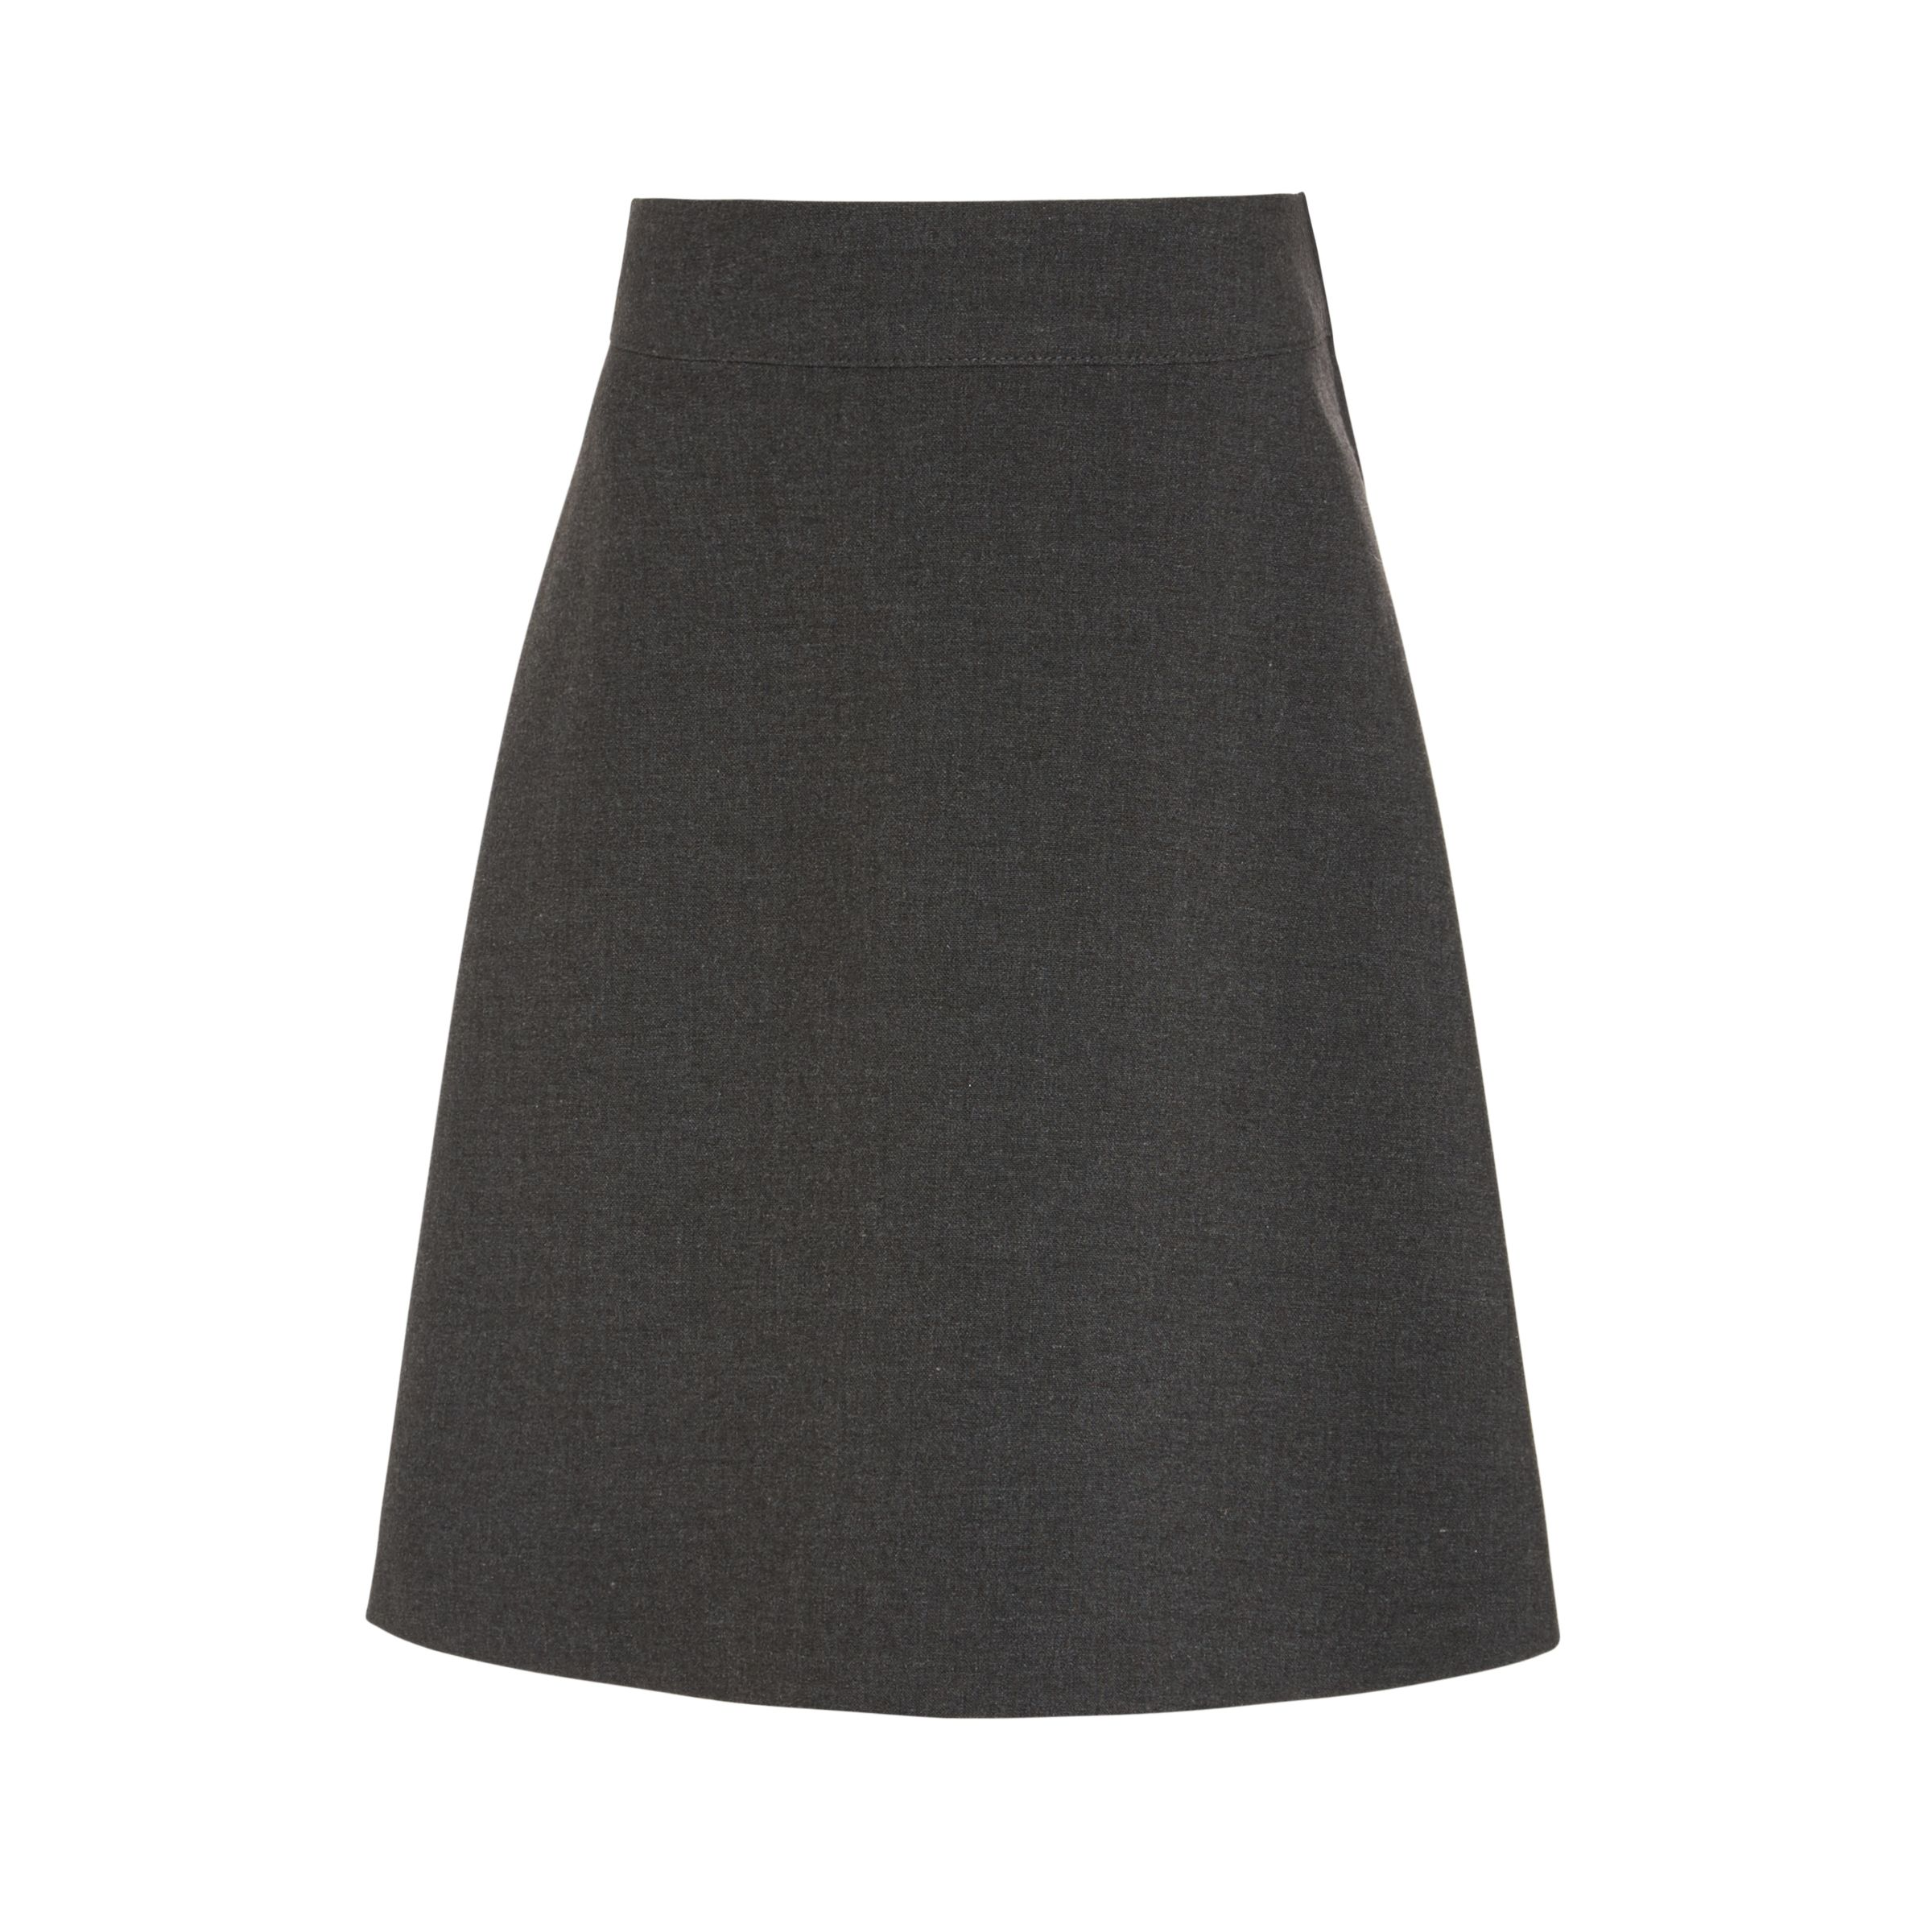 a53d0fecbc John Lewis & Partners Girls' Easy Care Adjustable Waist Skater School Skirt  at John Lewis & Partners